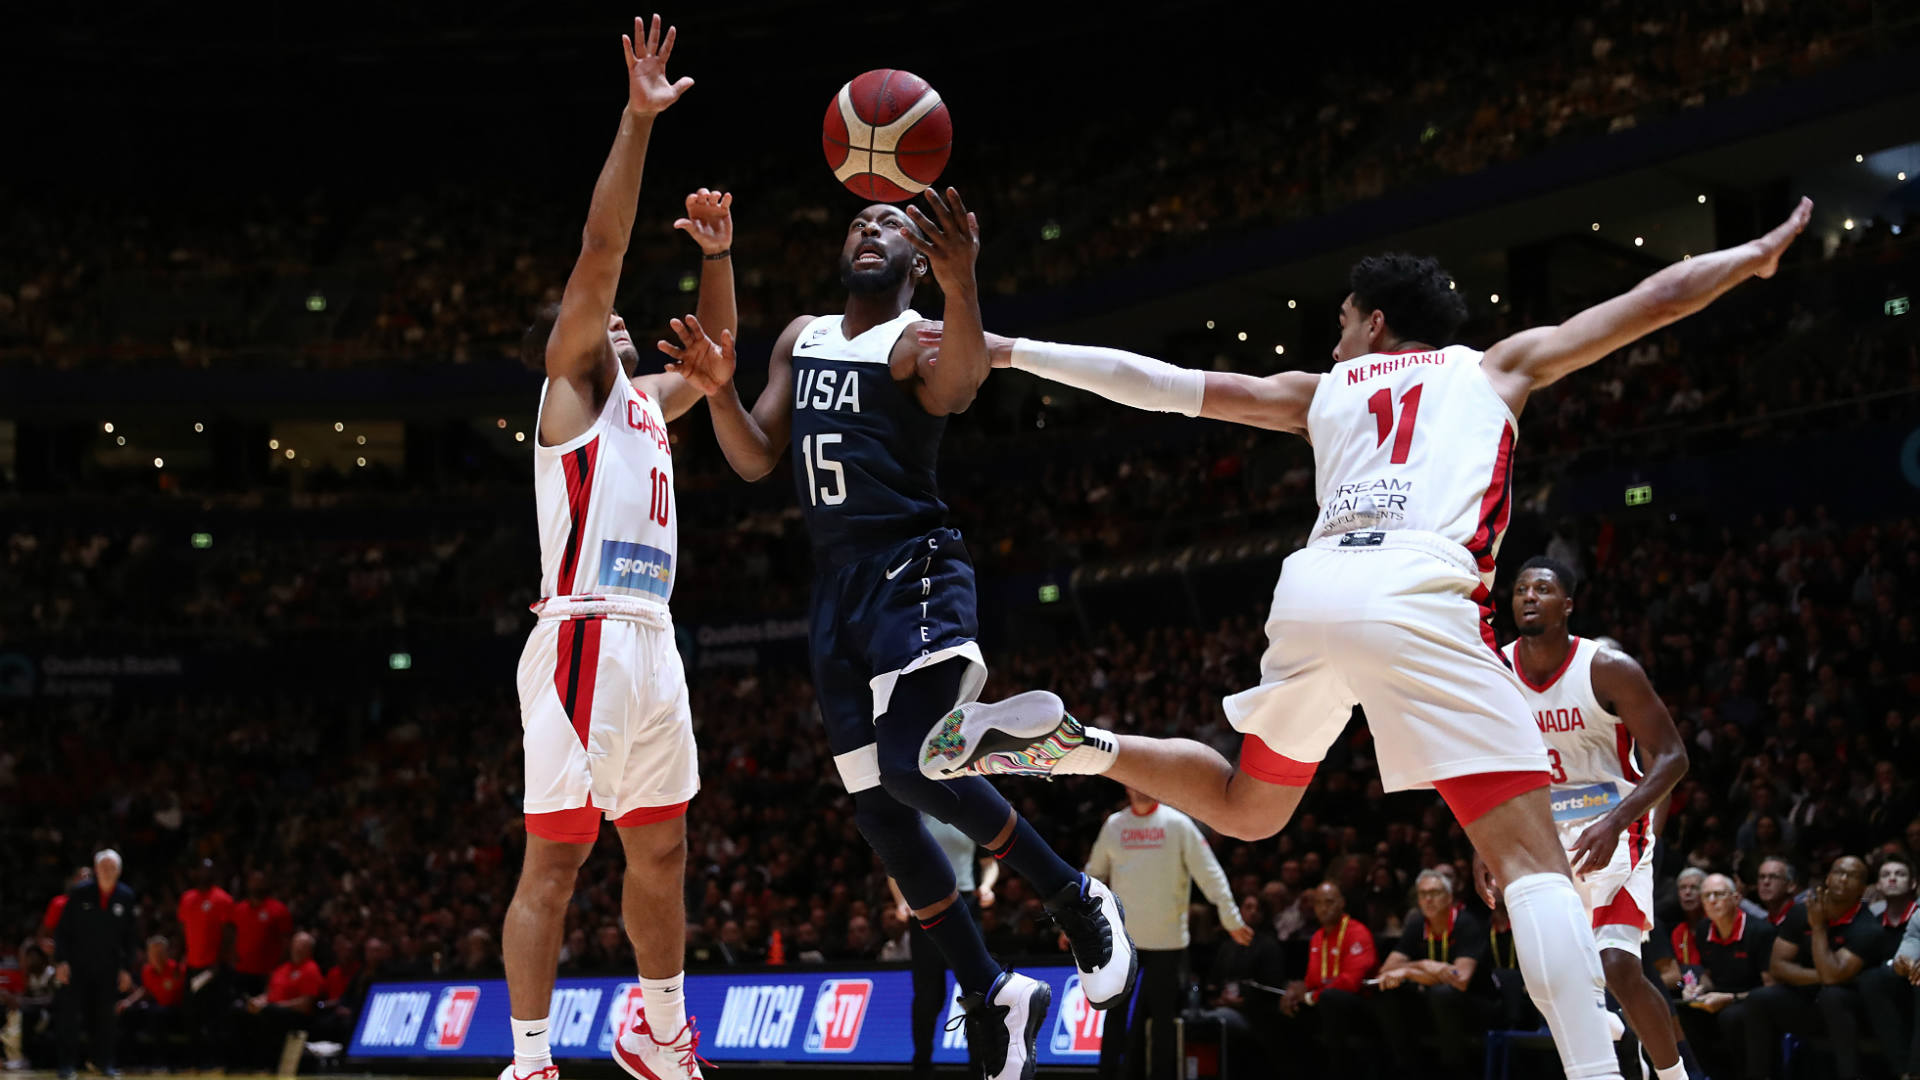 USA airball: Players who passed on FIBA World Cup will miss out on performance bump after